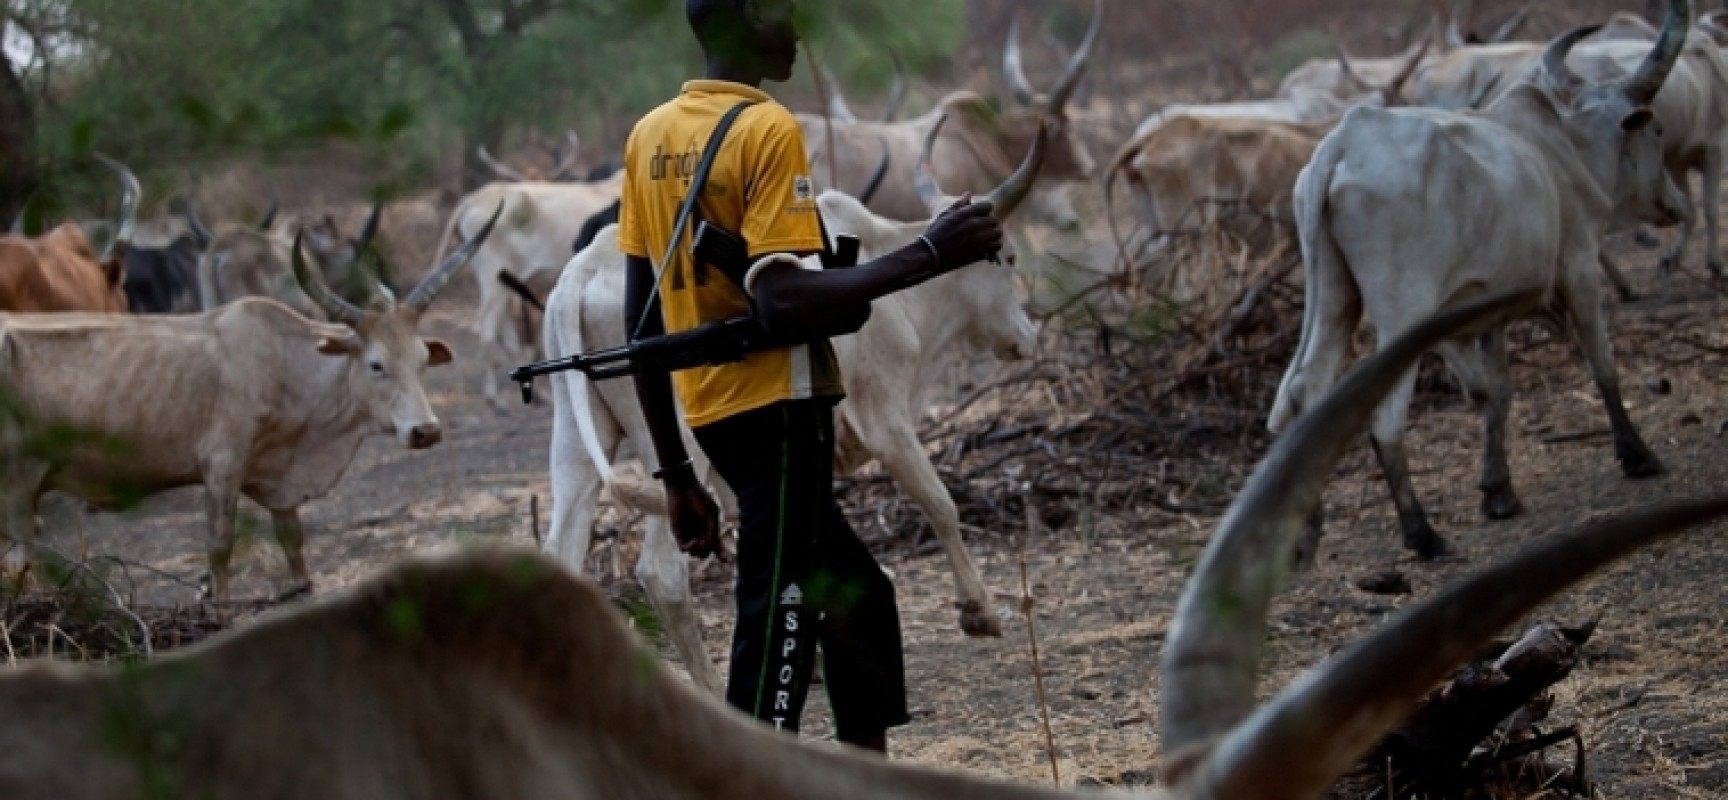 The incessant kidnappings and killing in Nigeria by the Fulani herdsmen have become almost second nature to the residents of select regions of the country.